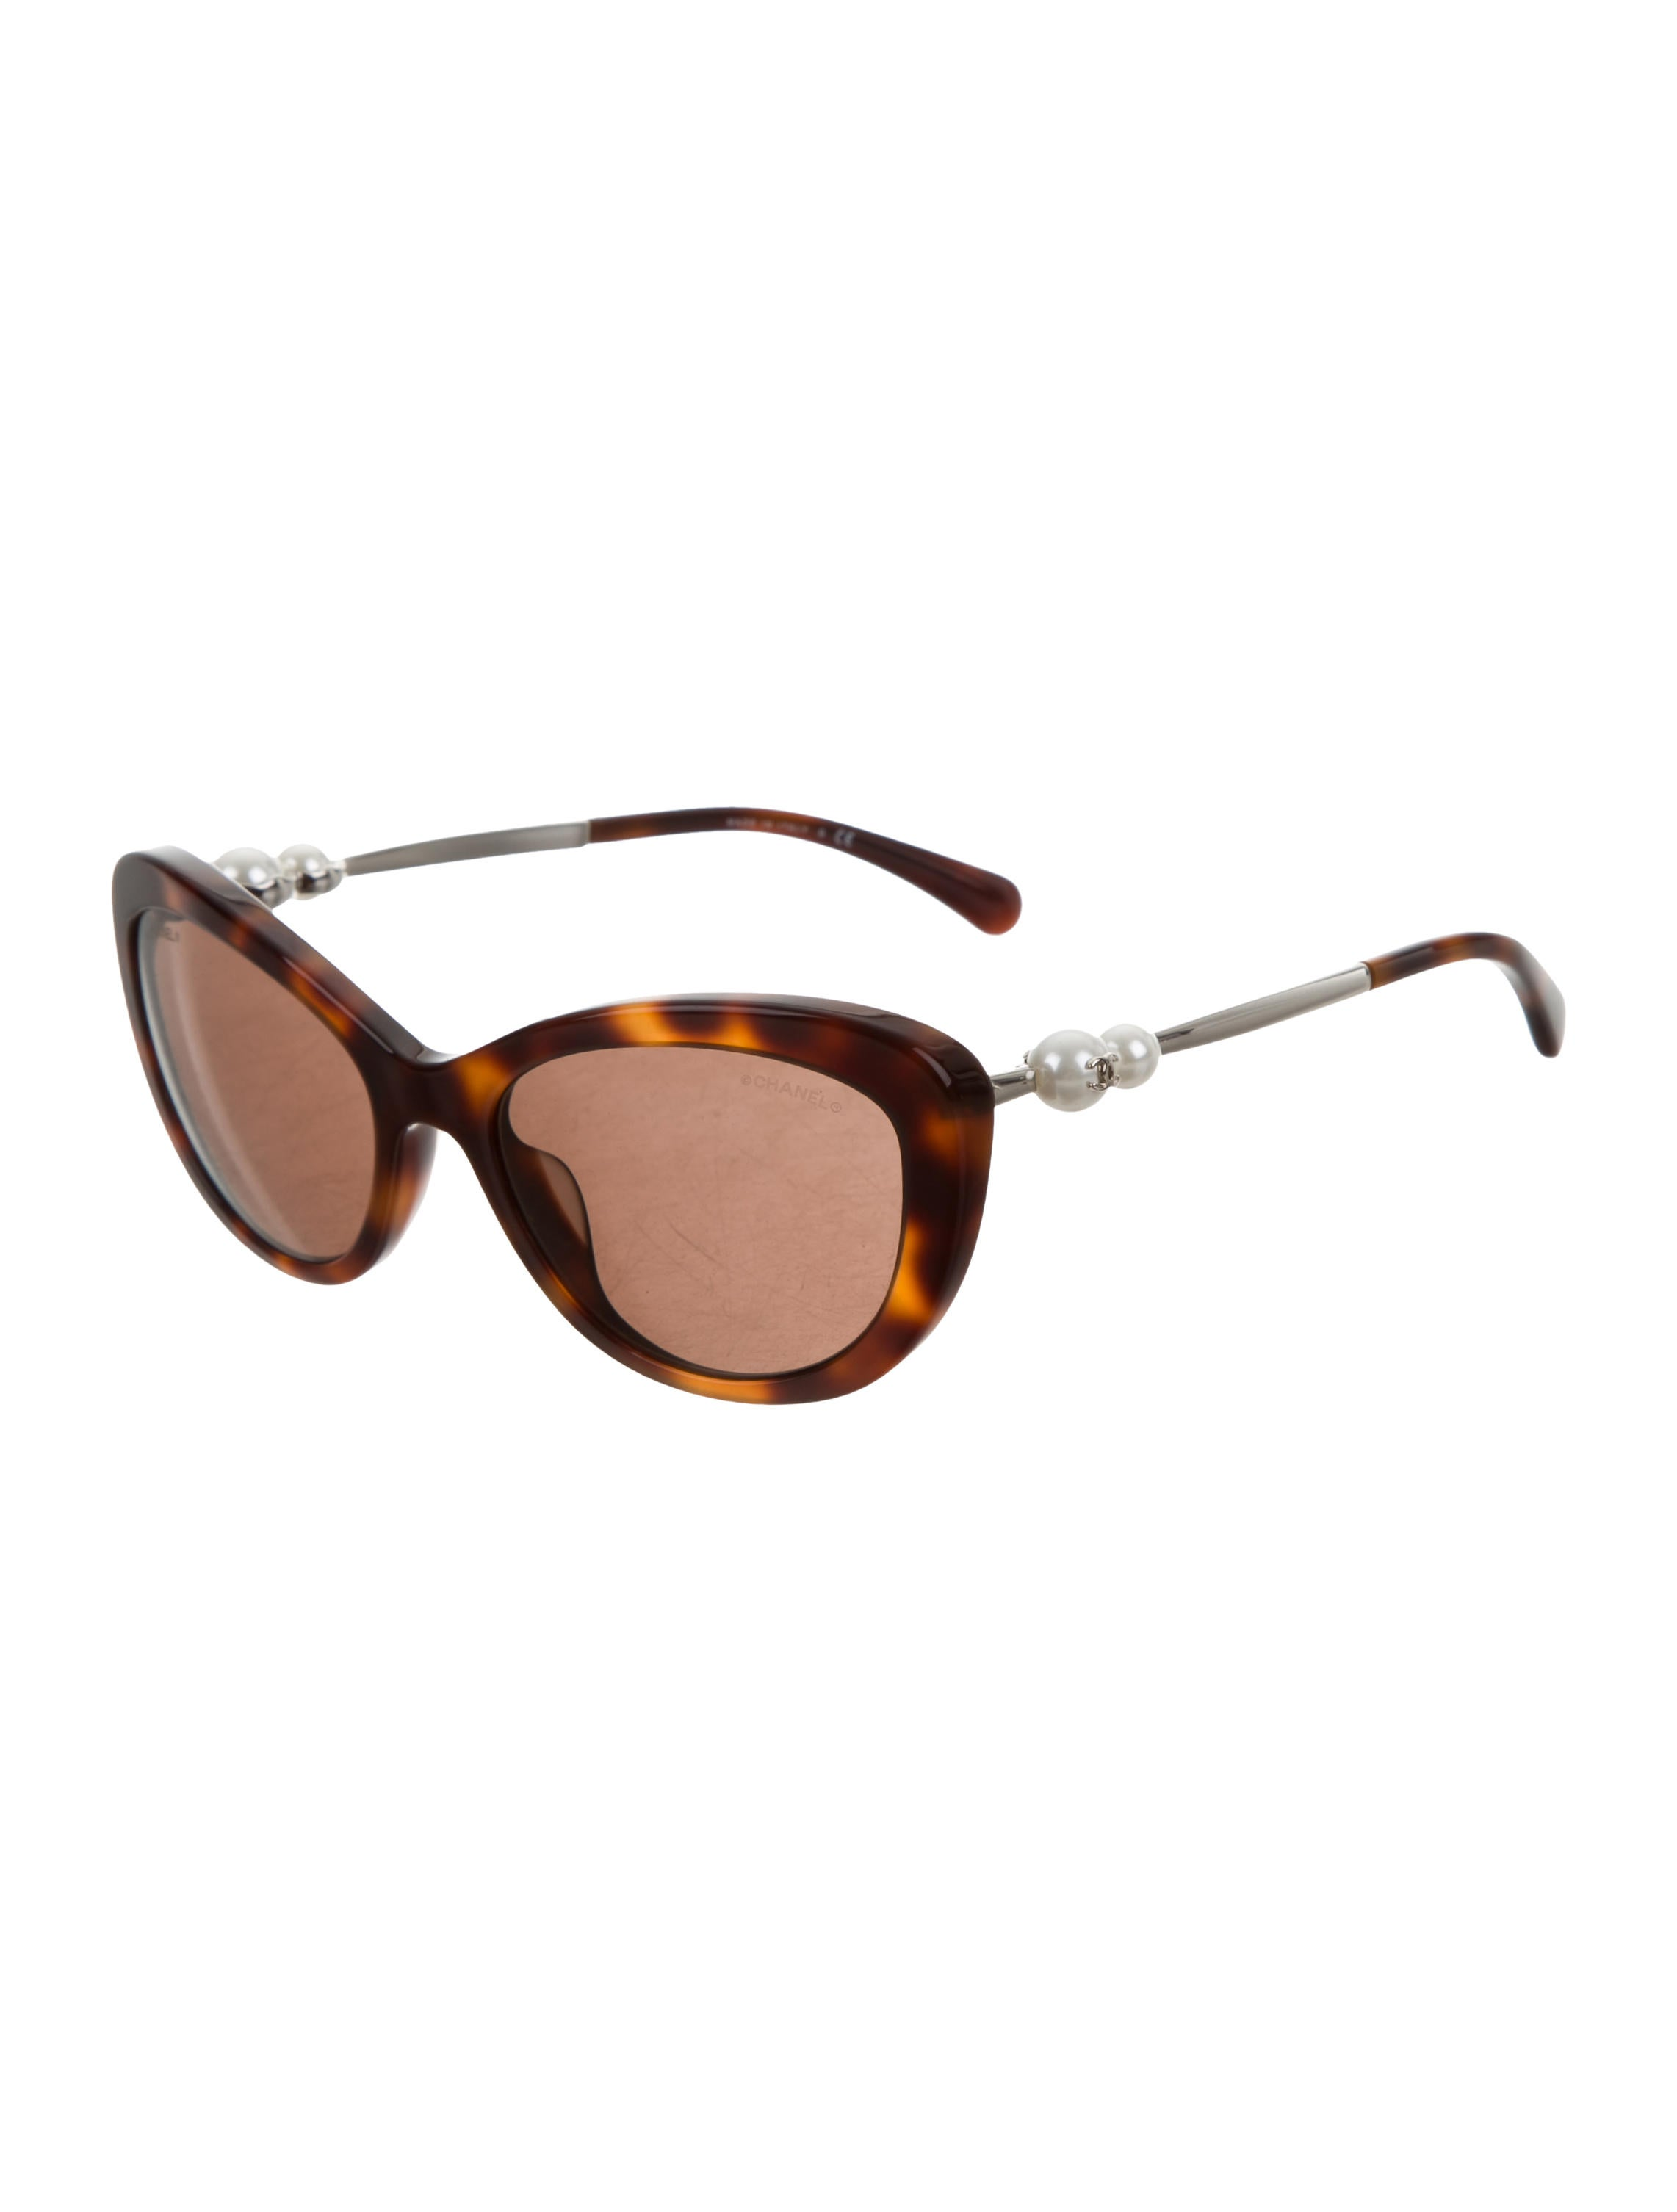 5175665bf2b1e Chanel Sunglasses With Pearls On The Side